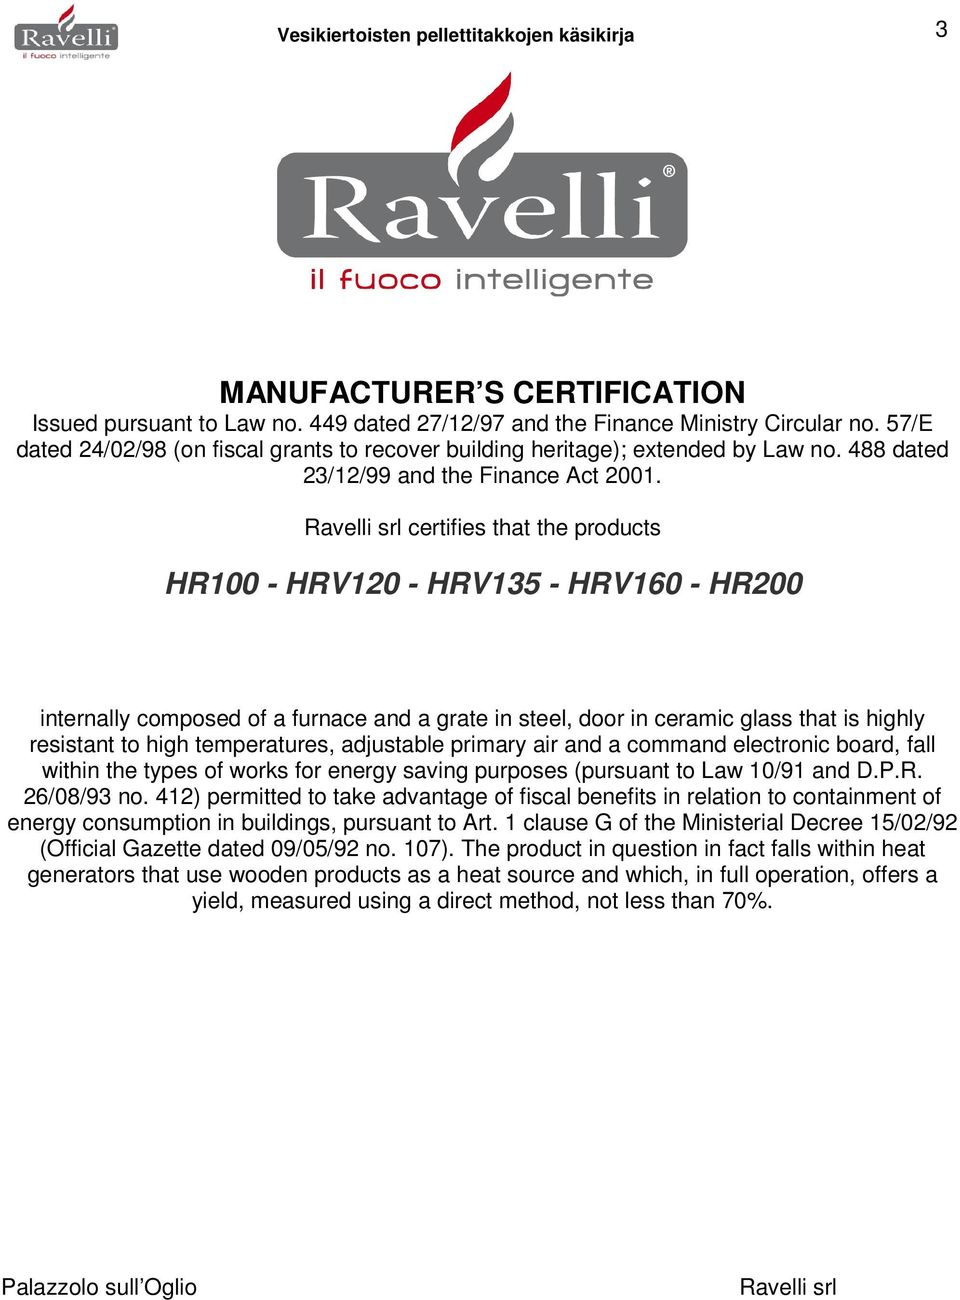 Ravelli srl certifies that the products HR100 - HRV120 - HRV135 - HRV160 - HR200 internally composed of a furnace and a grate in steel, door in ceramic glass that is highly resistant to high